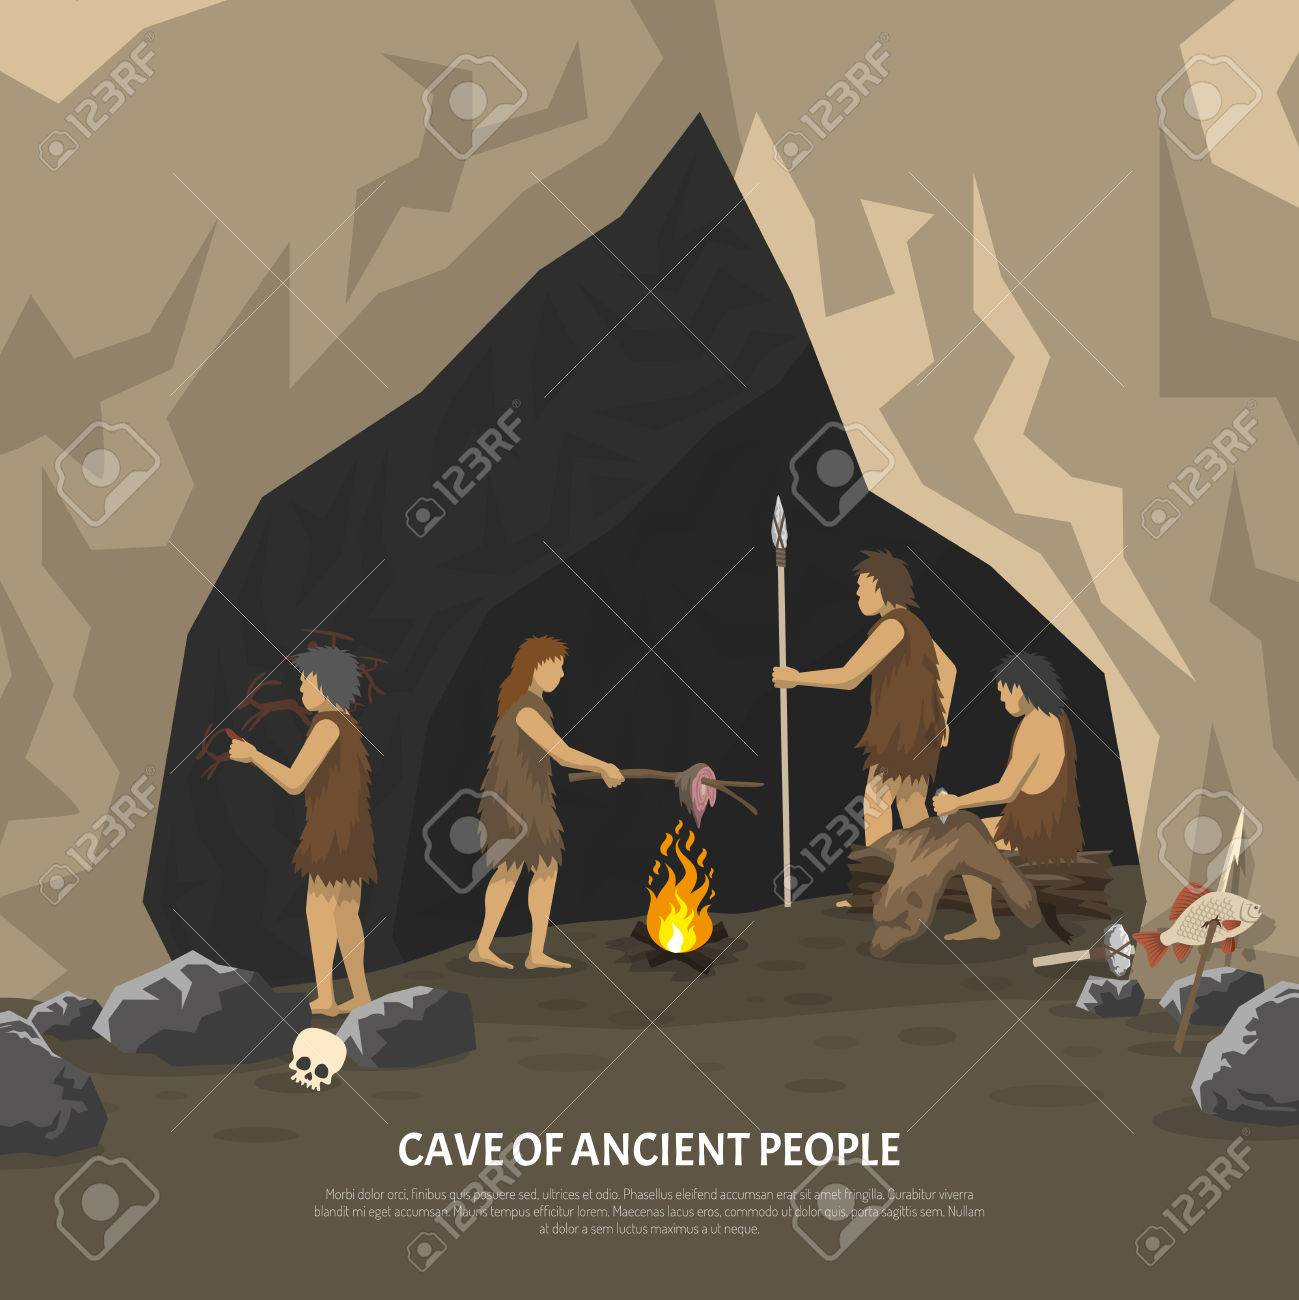 Color illustration showing activities ancient people in cave in stone age vector illustration - 54906942